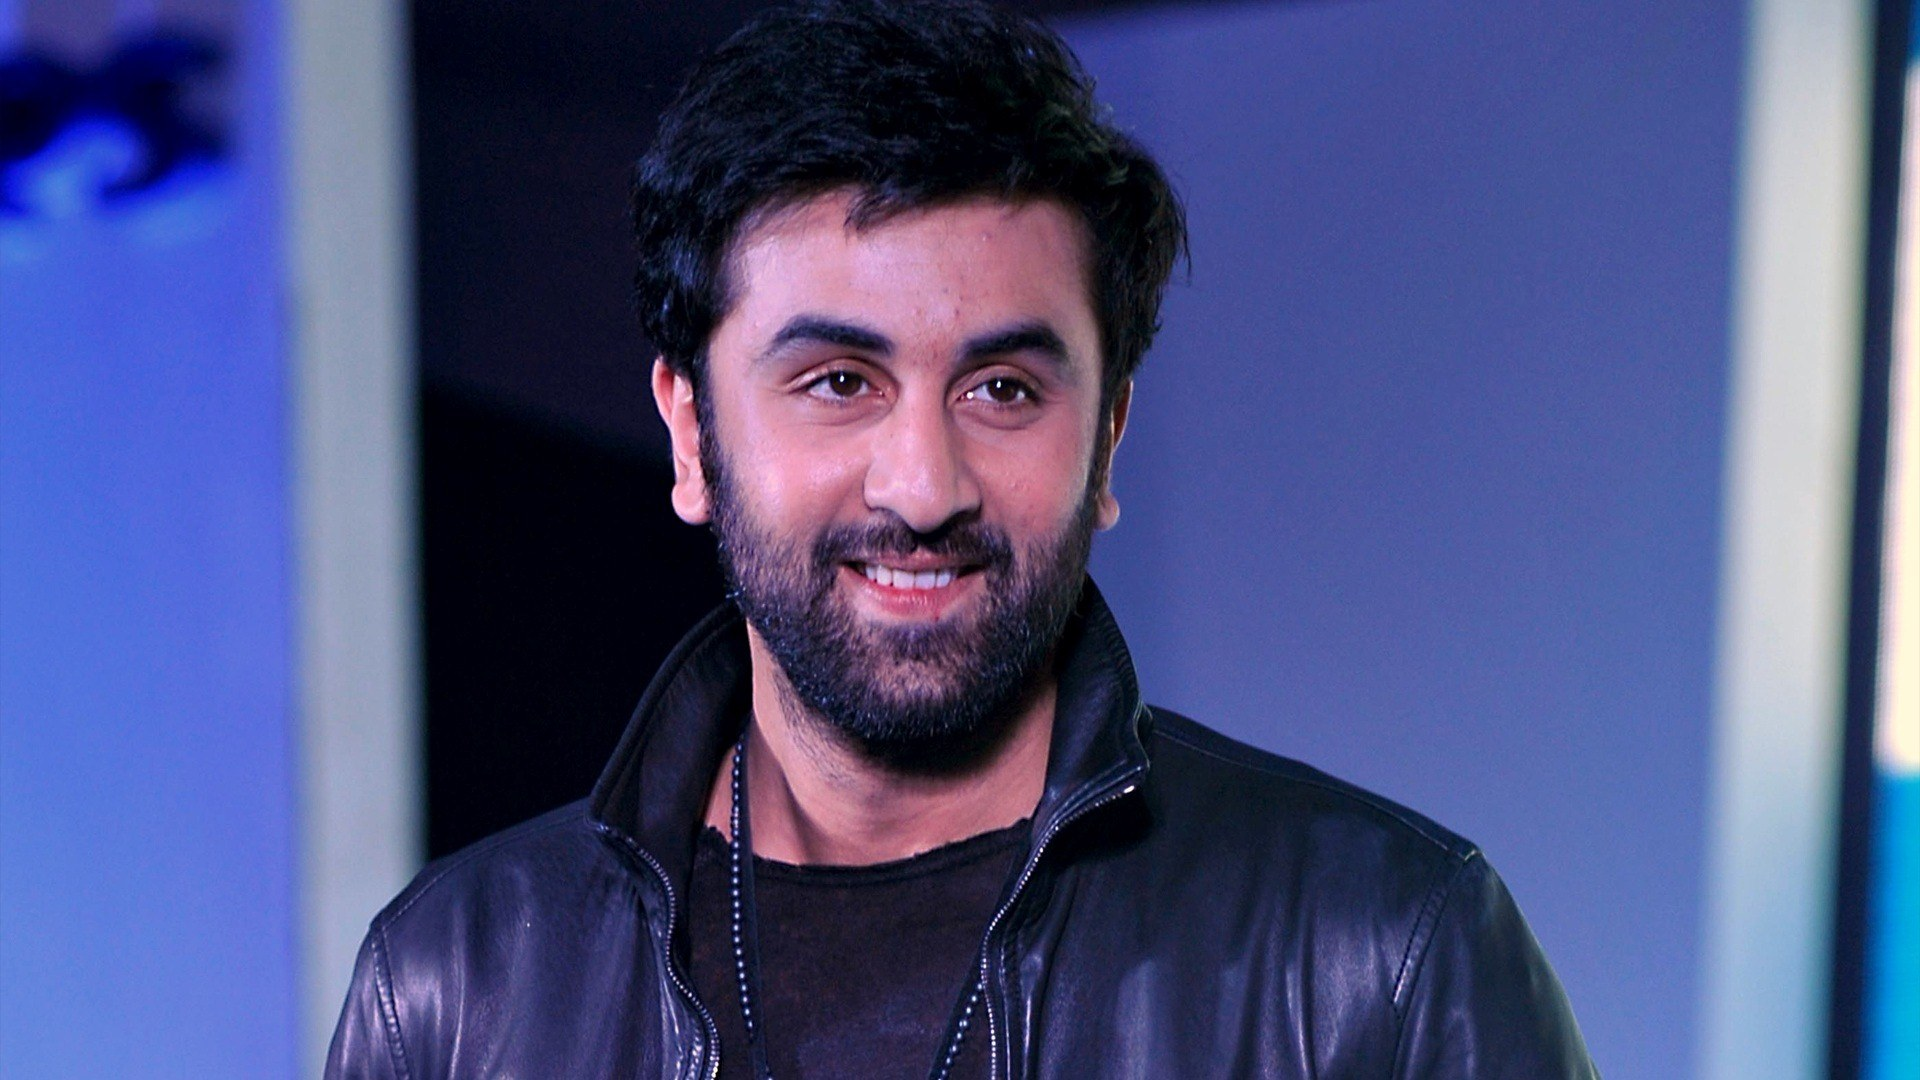 Download Ranbir Kapoor Images , Wallpapers in HD Quality 5